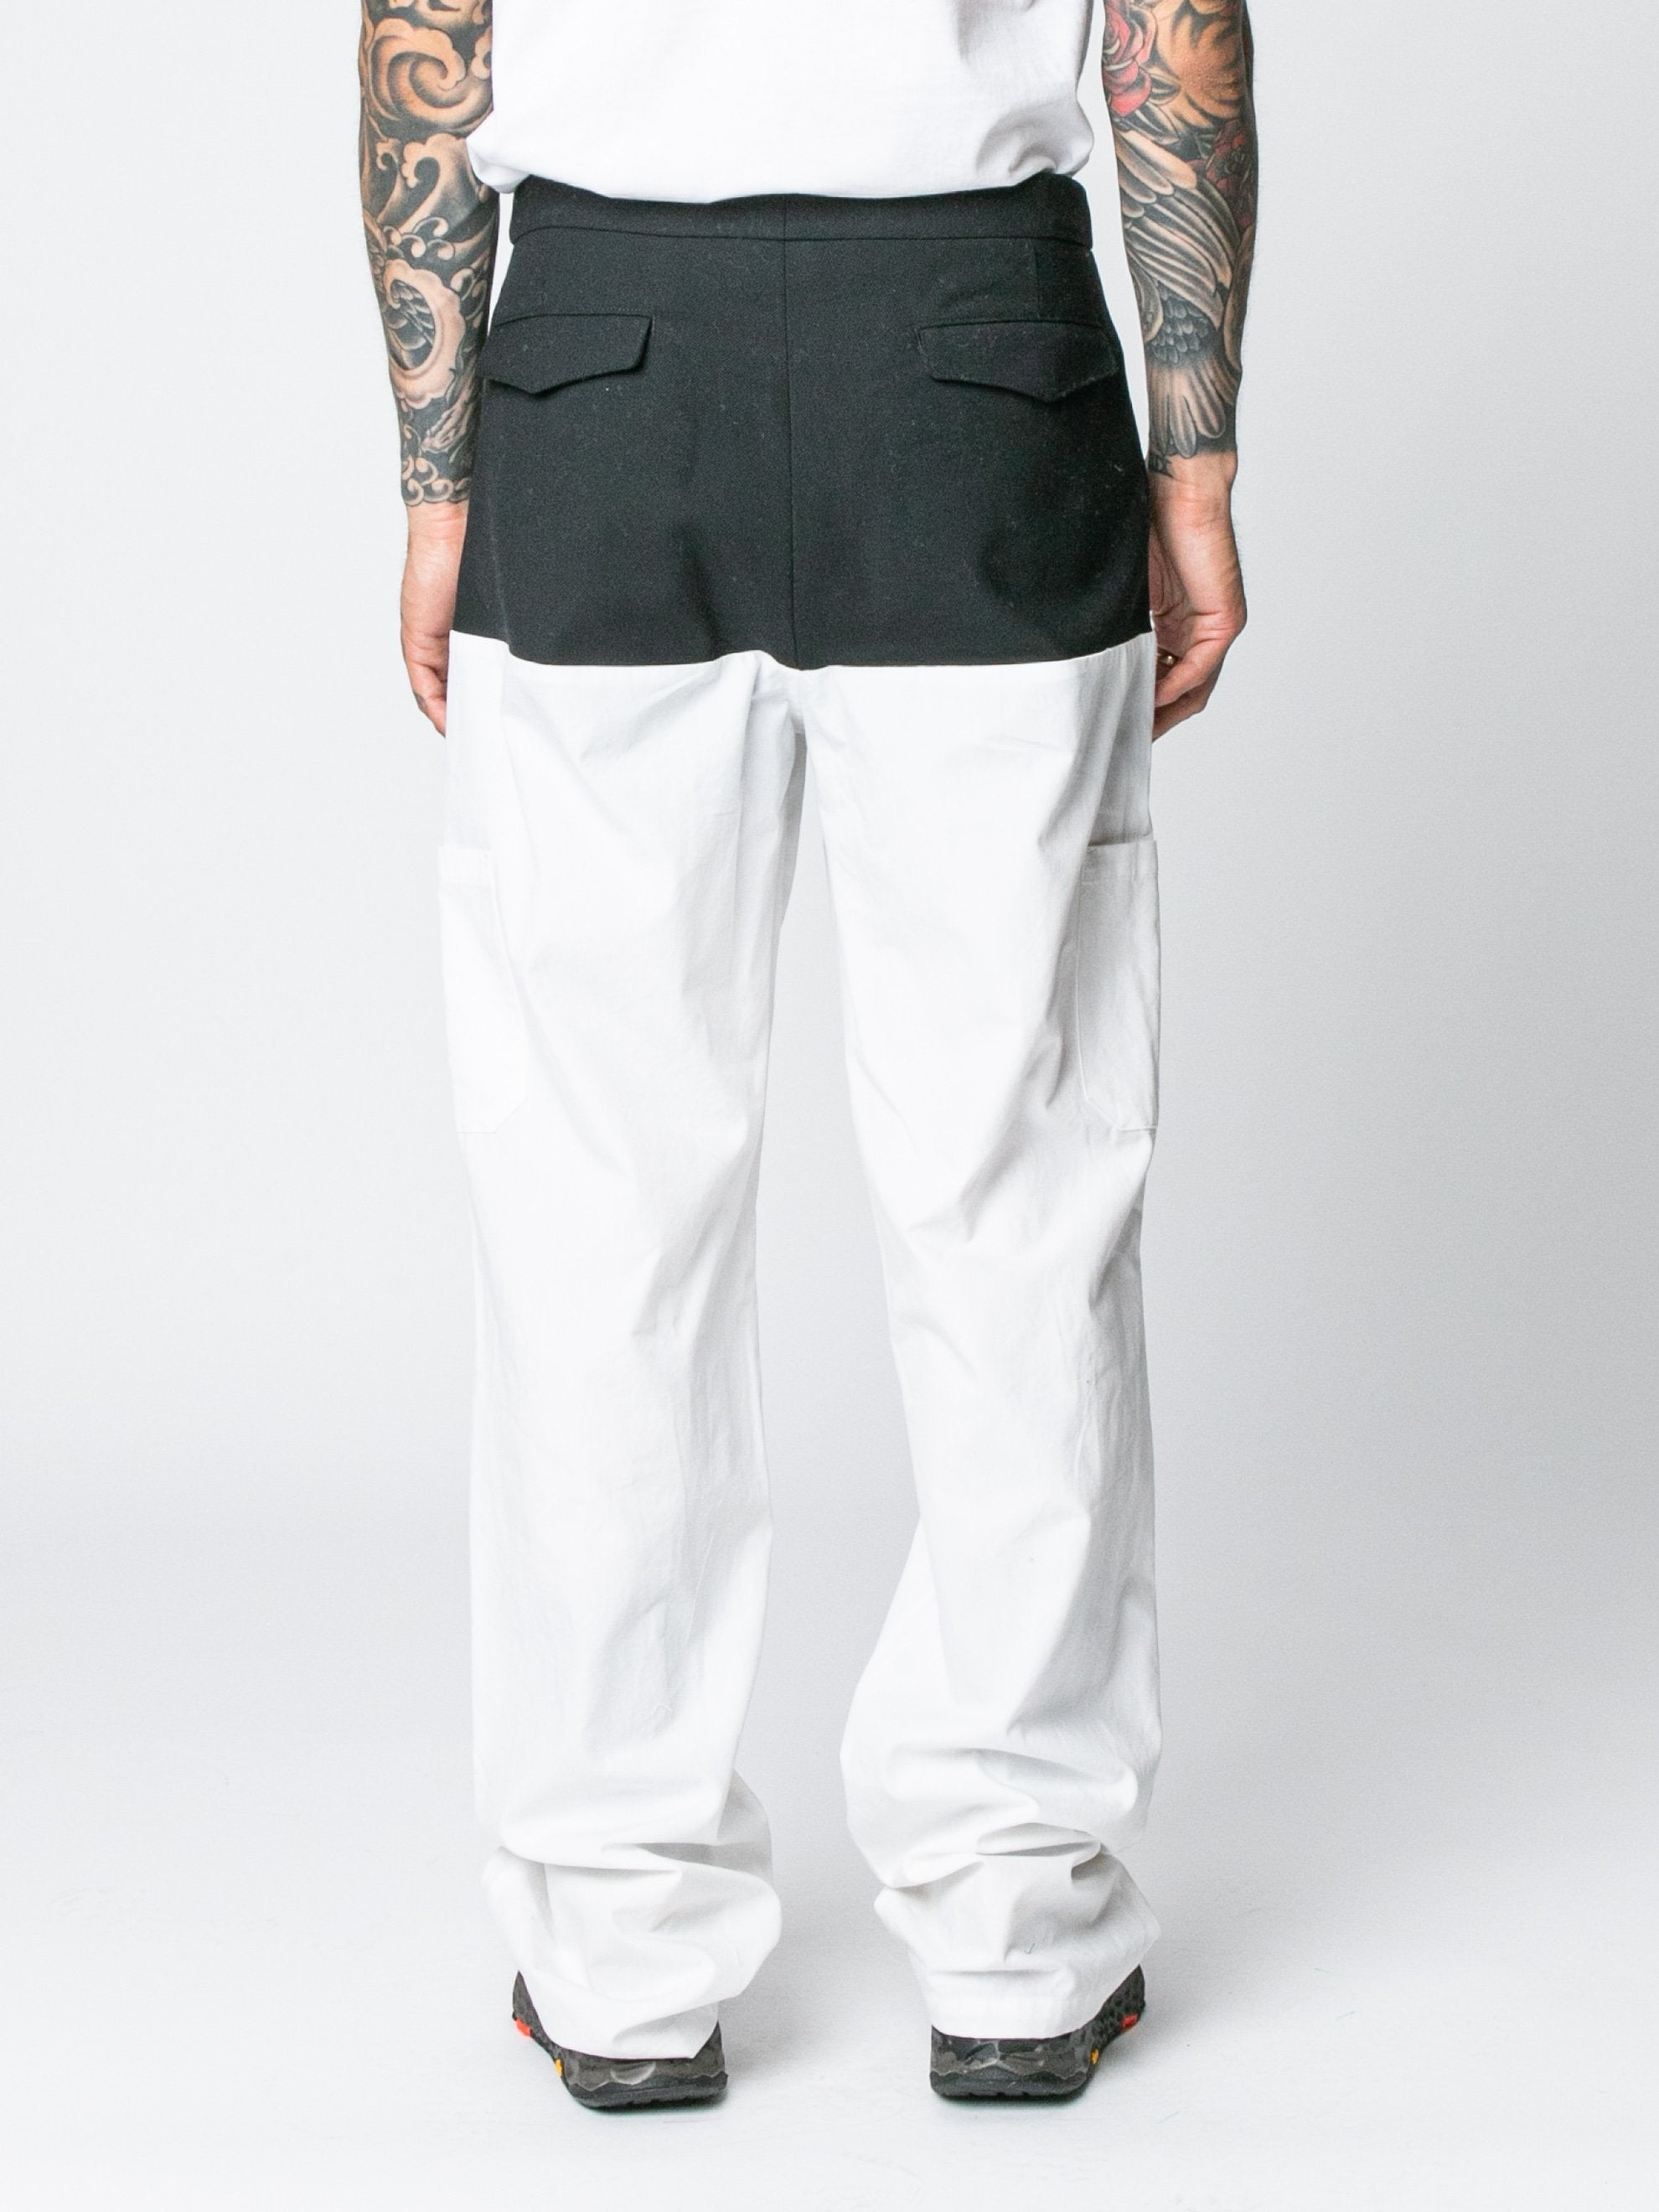 Pants With Horizontal Cut Pockets & Suspenders